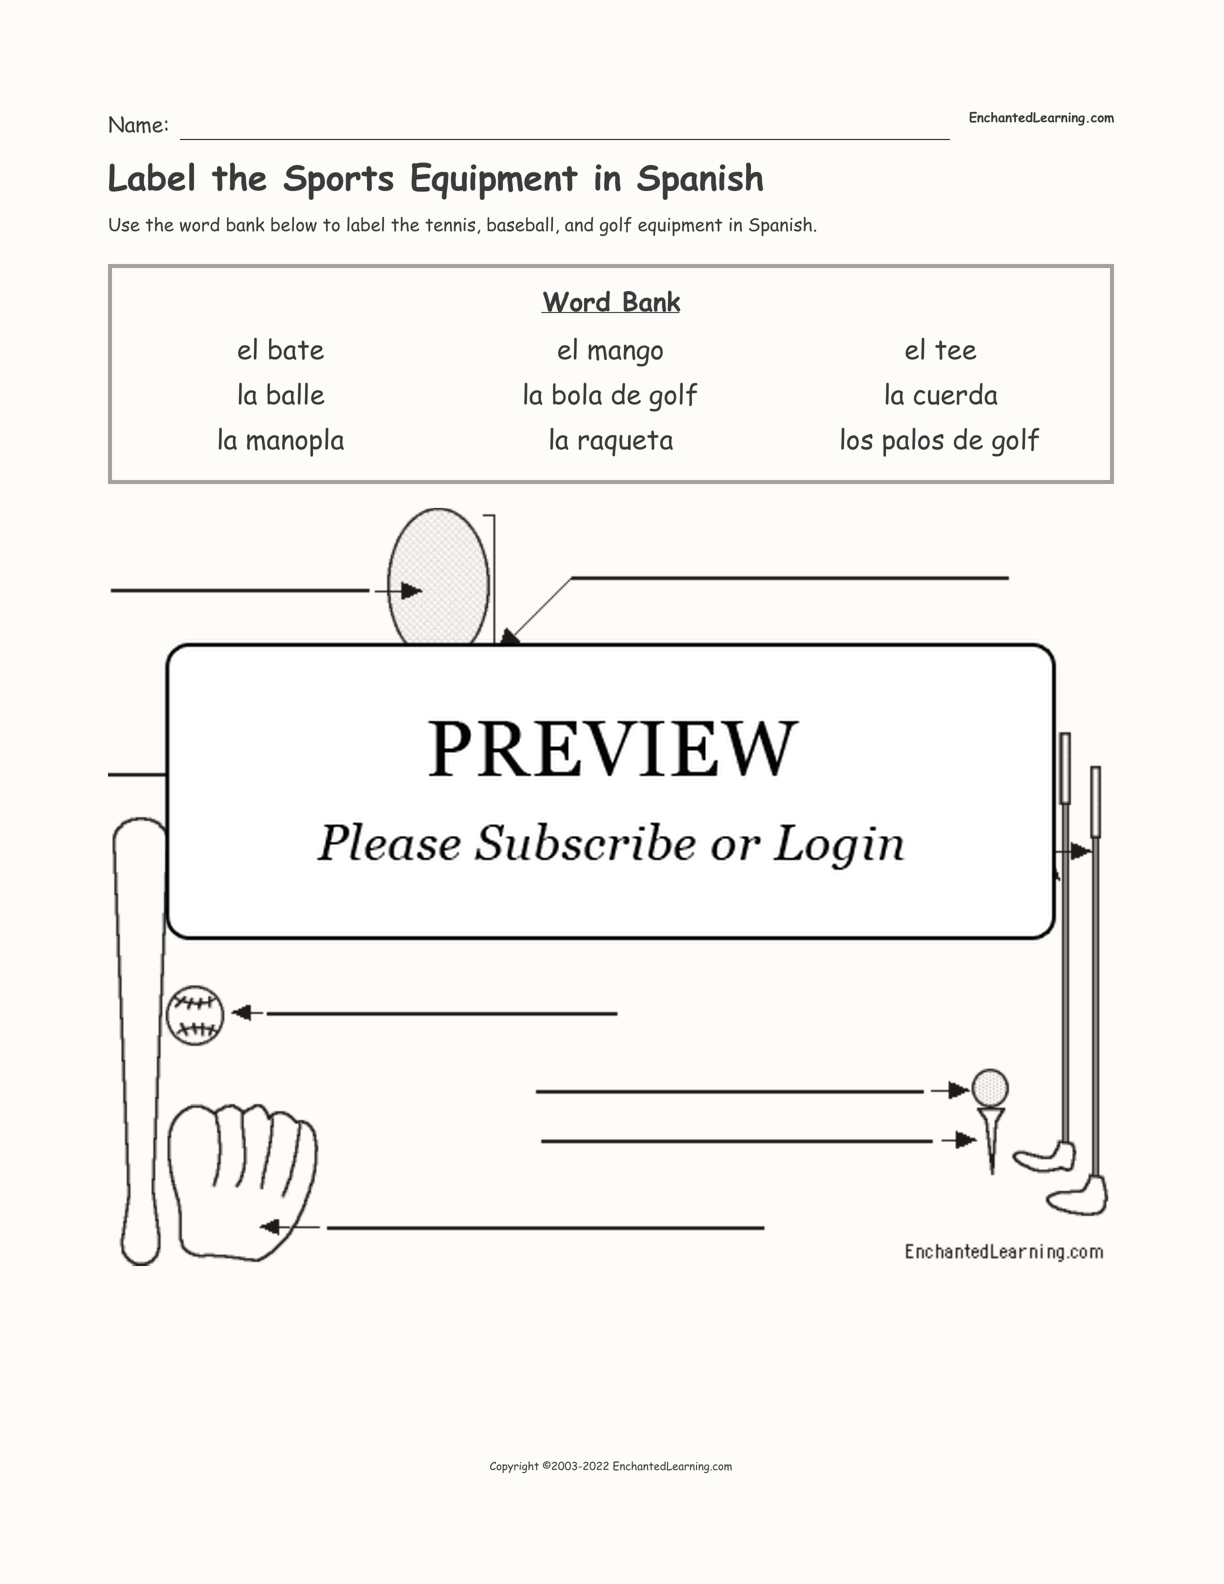 Label the Sports Equipment in Spanish interactive worksheet page 1